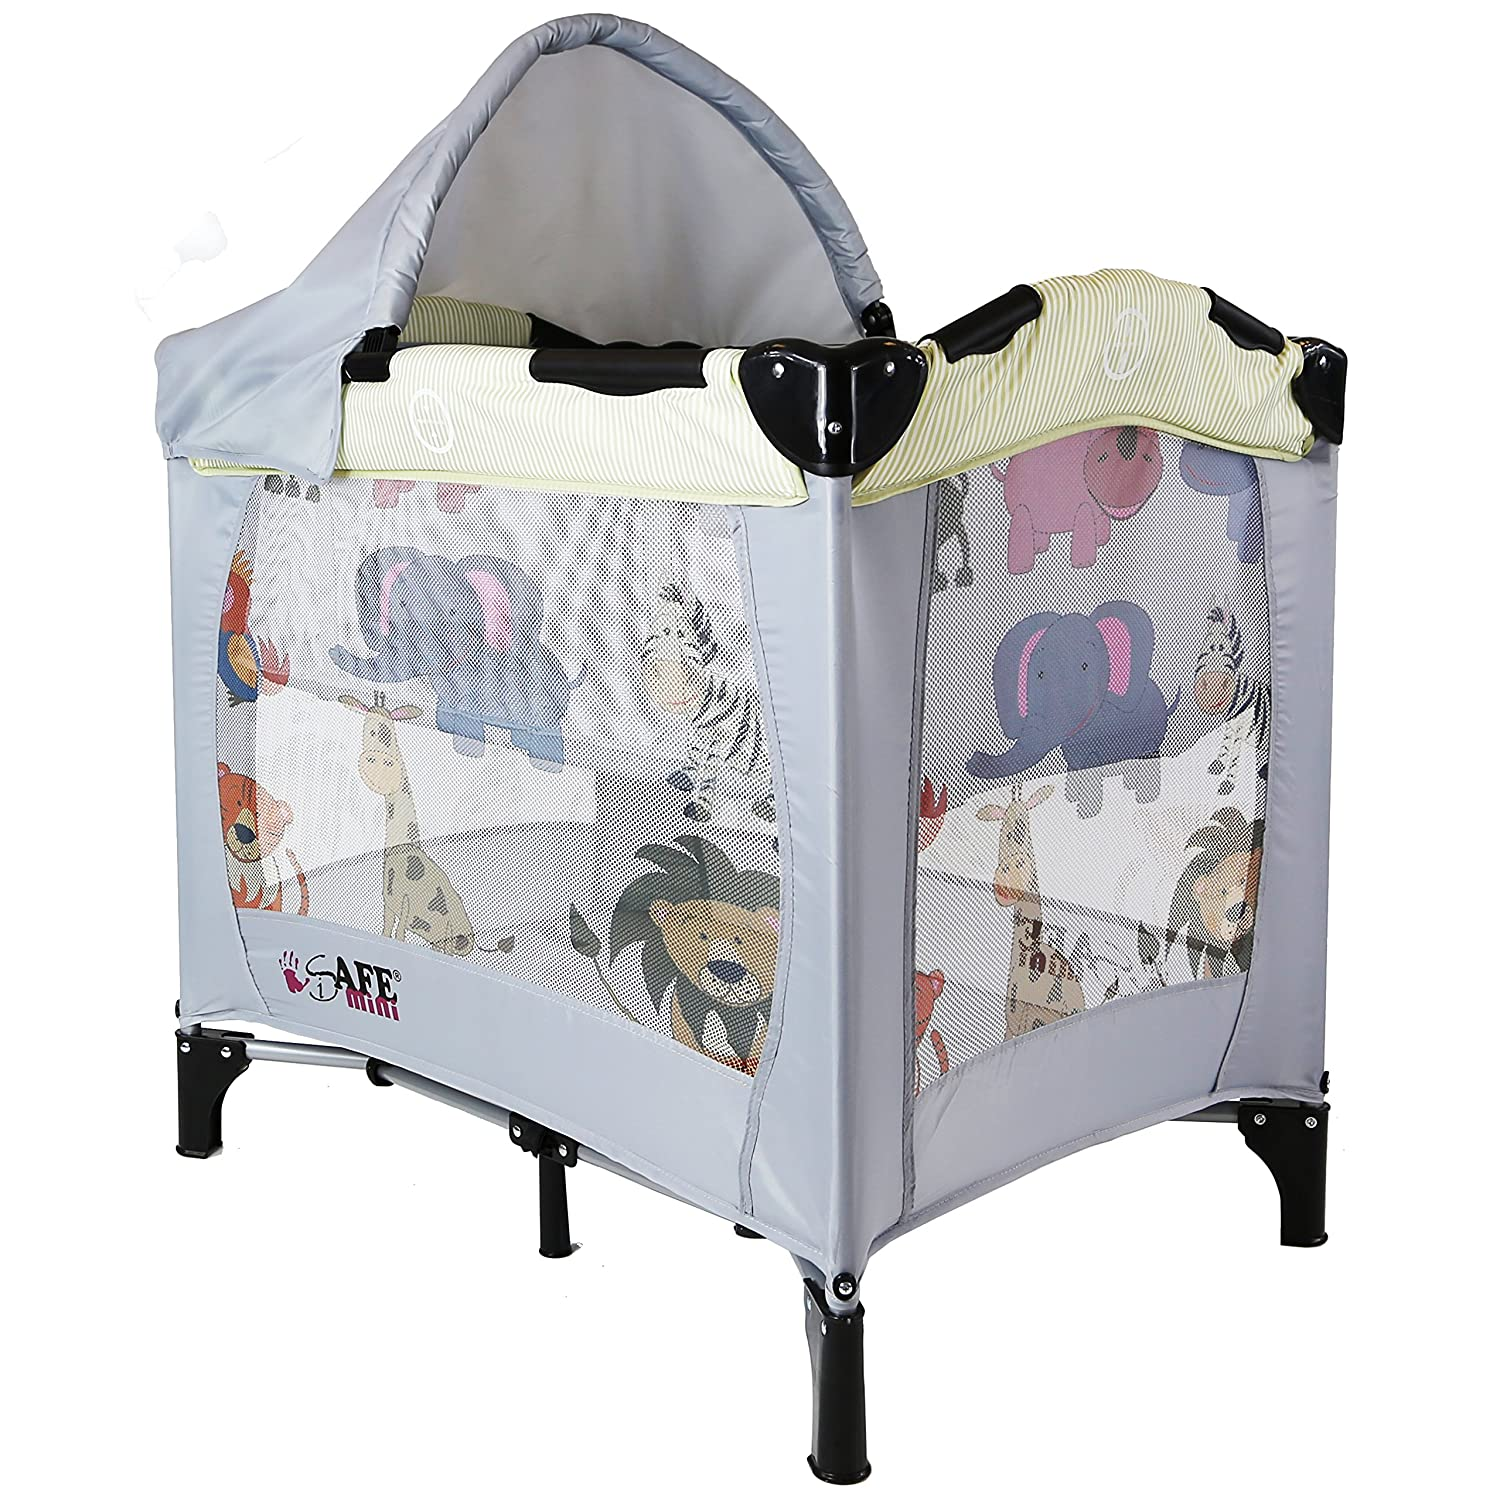 iSafe Mini Travel Cot With Bassinet And Canopy - Smiley And Cuddly 81 x 56 x 84 cm